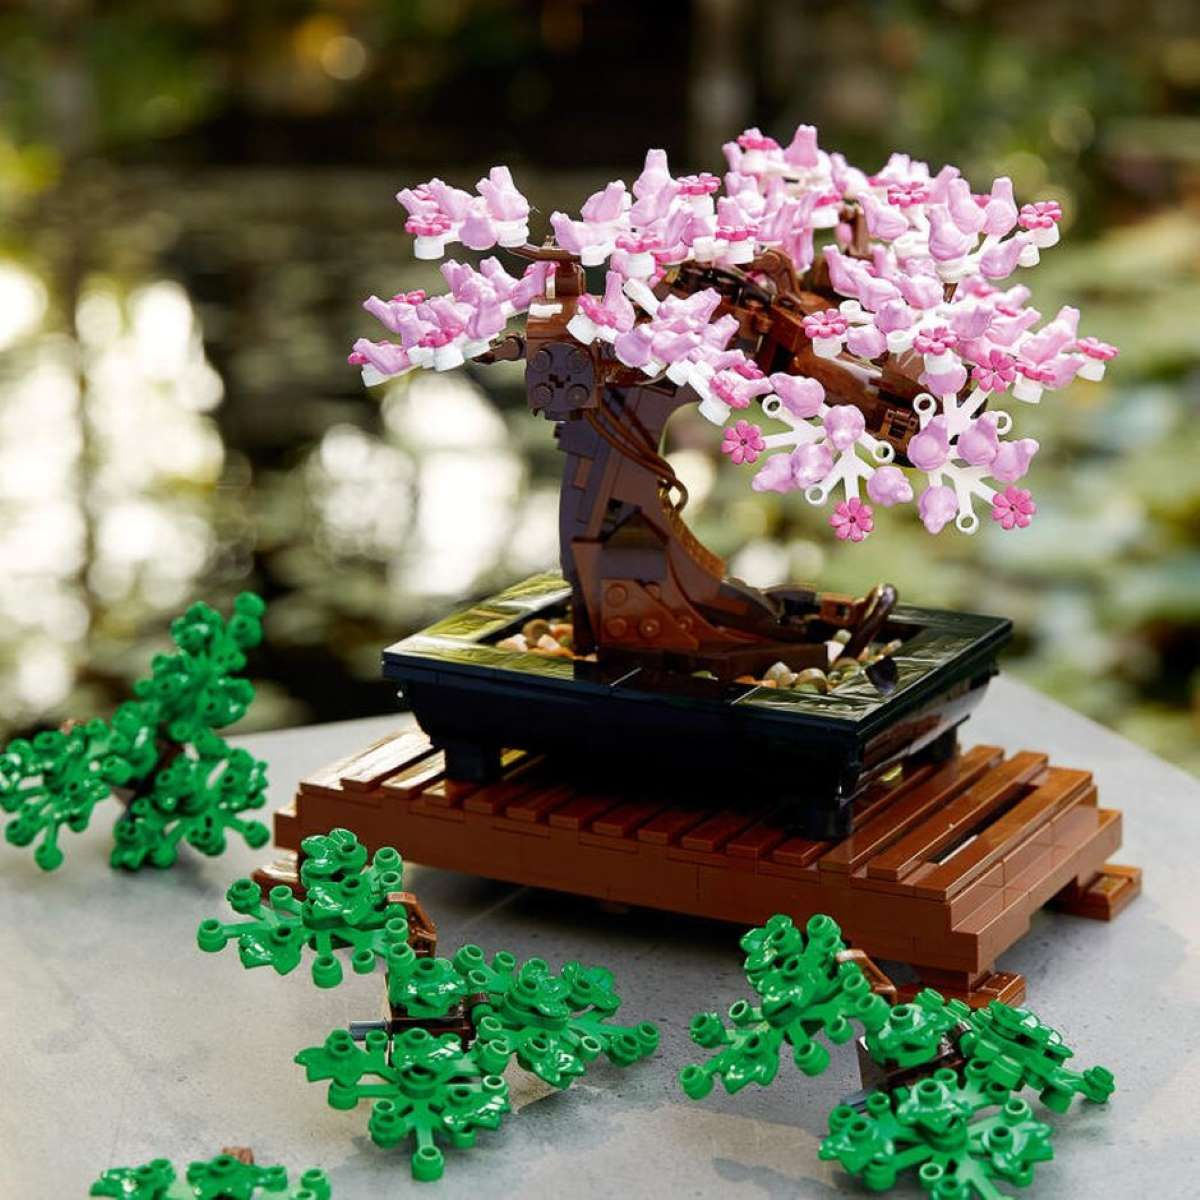 Lego Wants To Help You Relax By Making Brick Bonsai Trees Flower Bouquets In 2021 Bonsai Tree Flowers Bouquet Botanical Collection